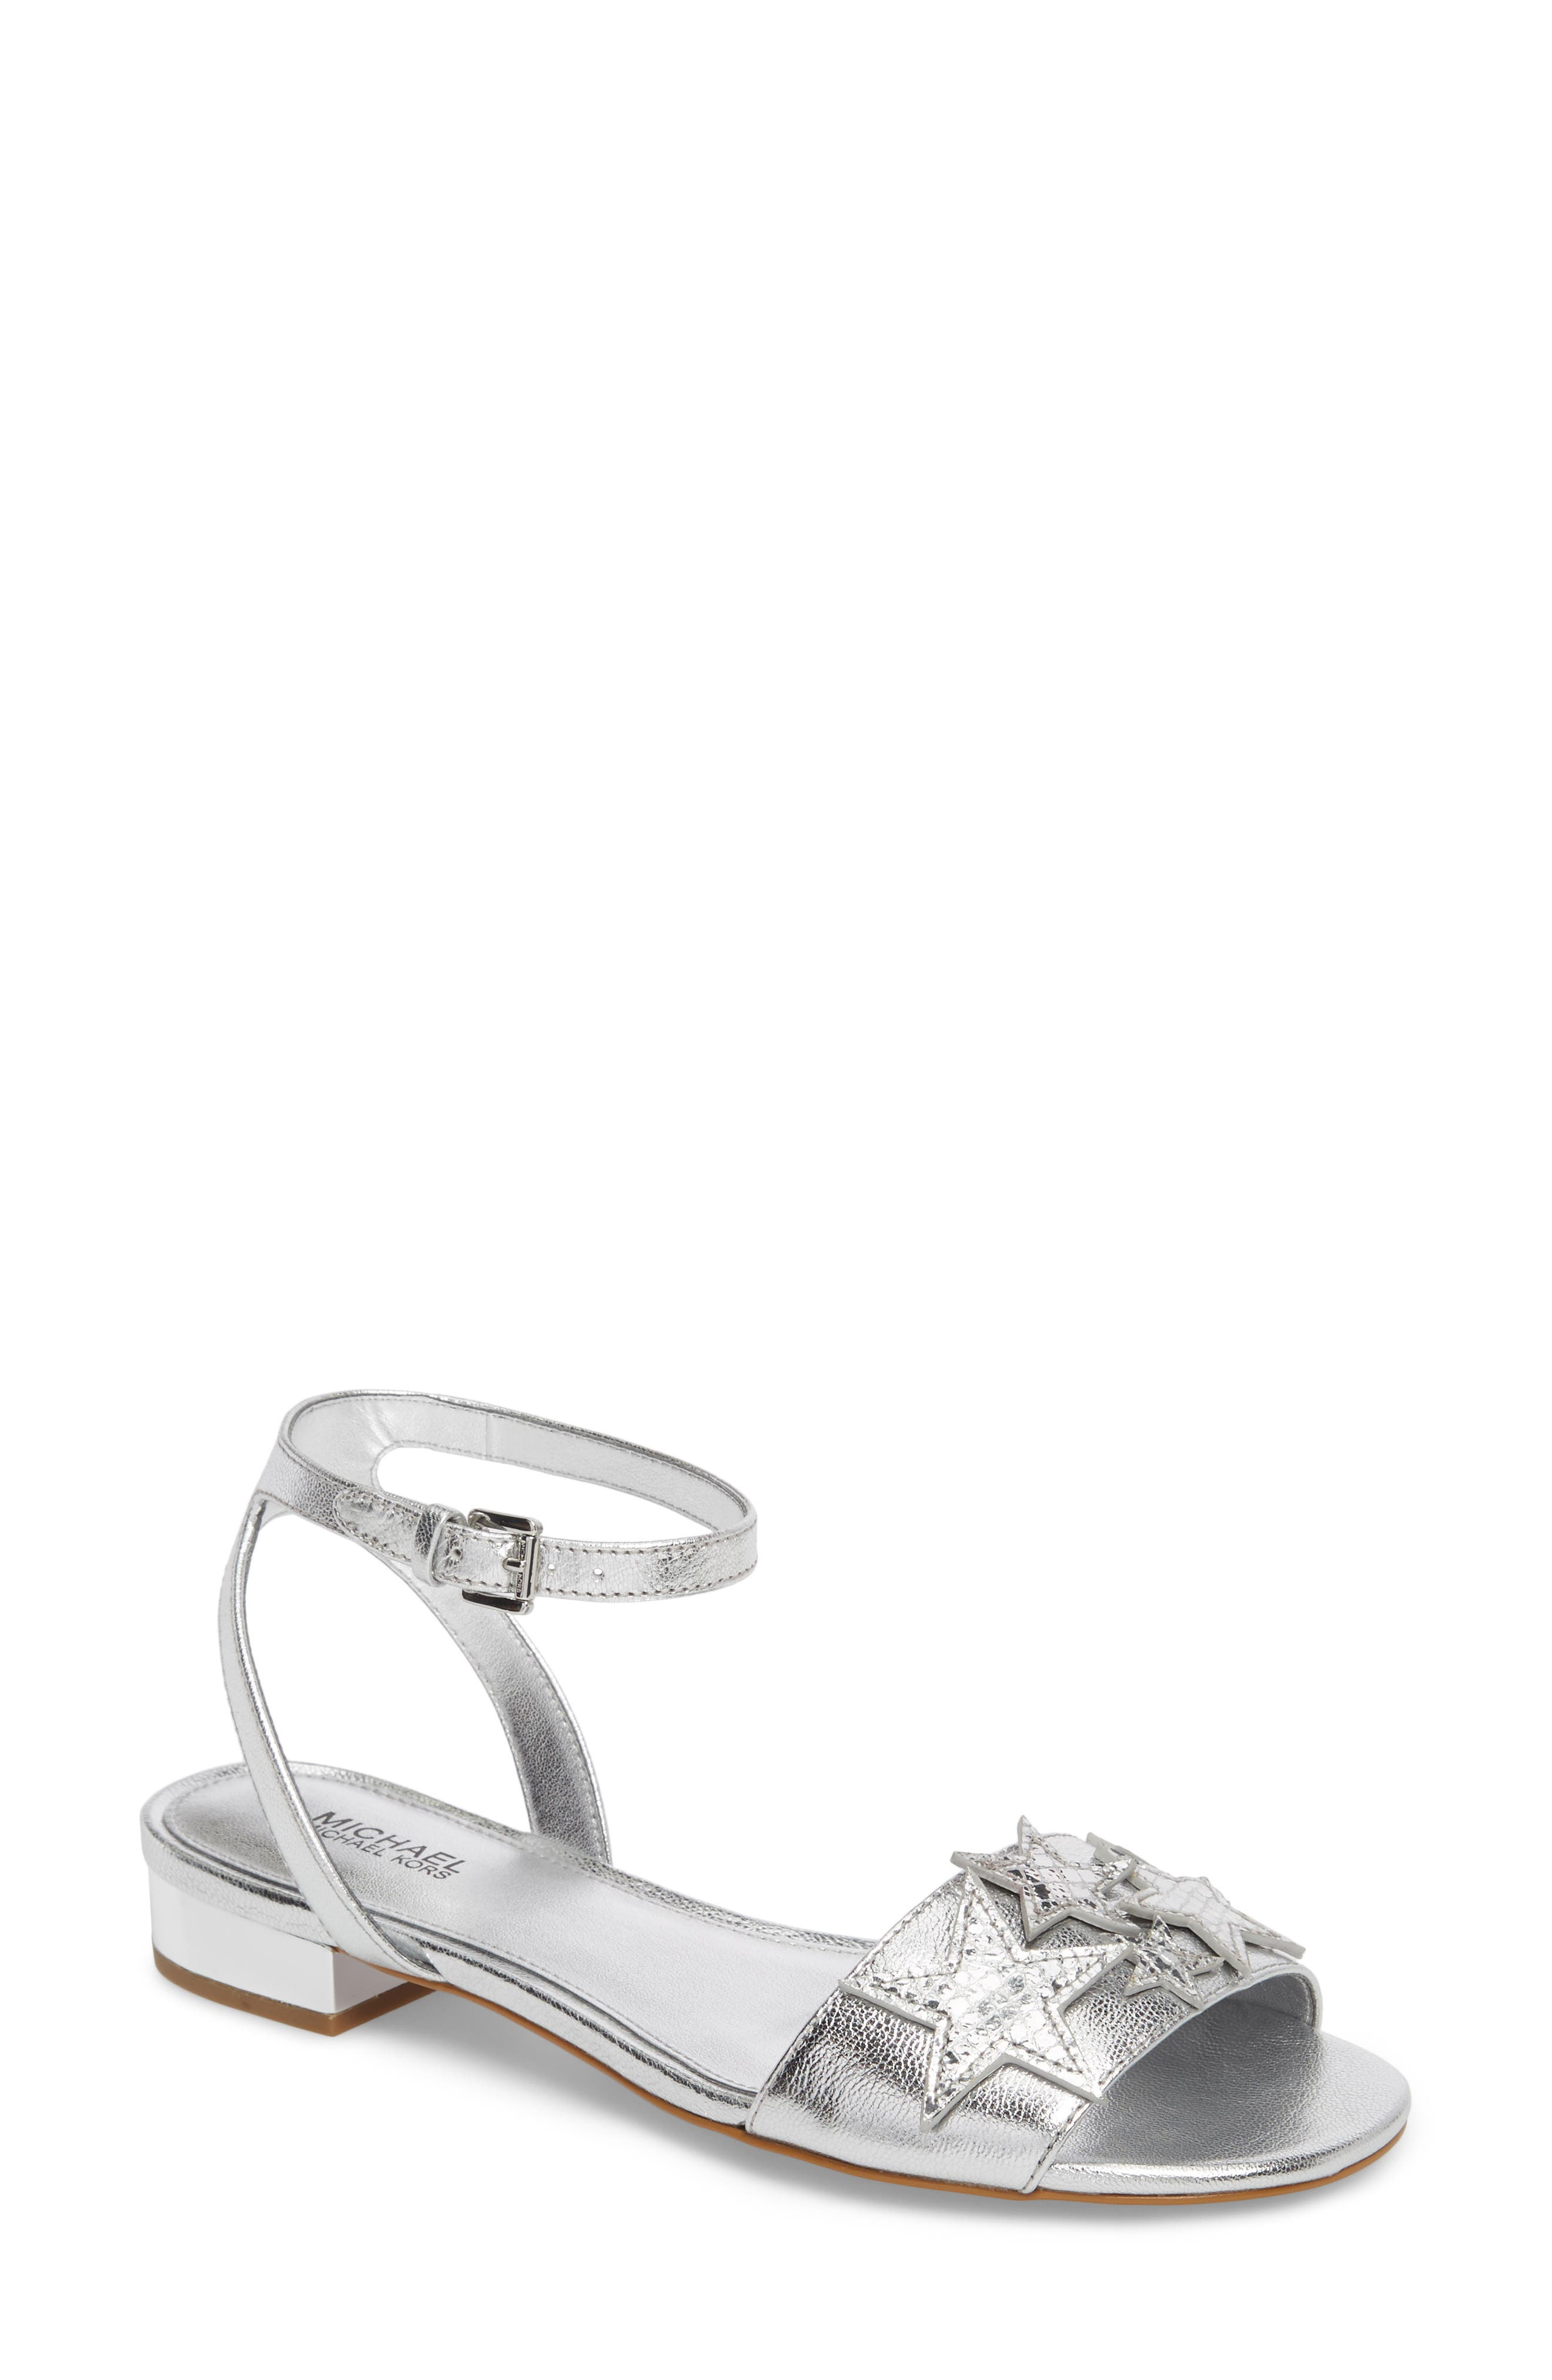 Lexie Star Embellished Sandal,                             Main thumbnail 1, color,                             Silver Nappa Leather